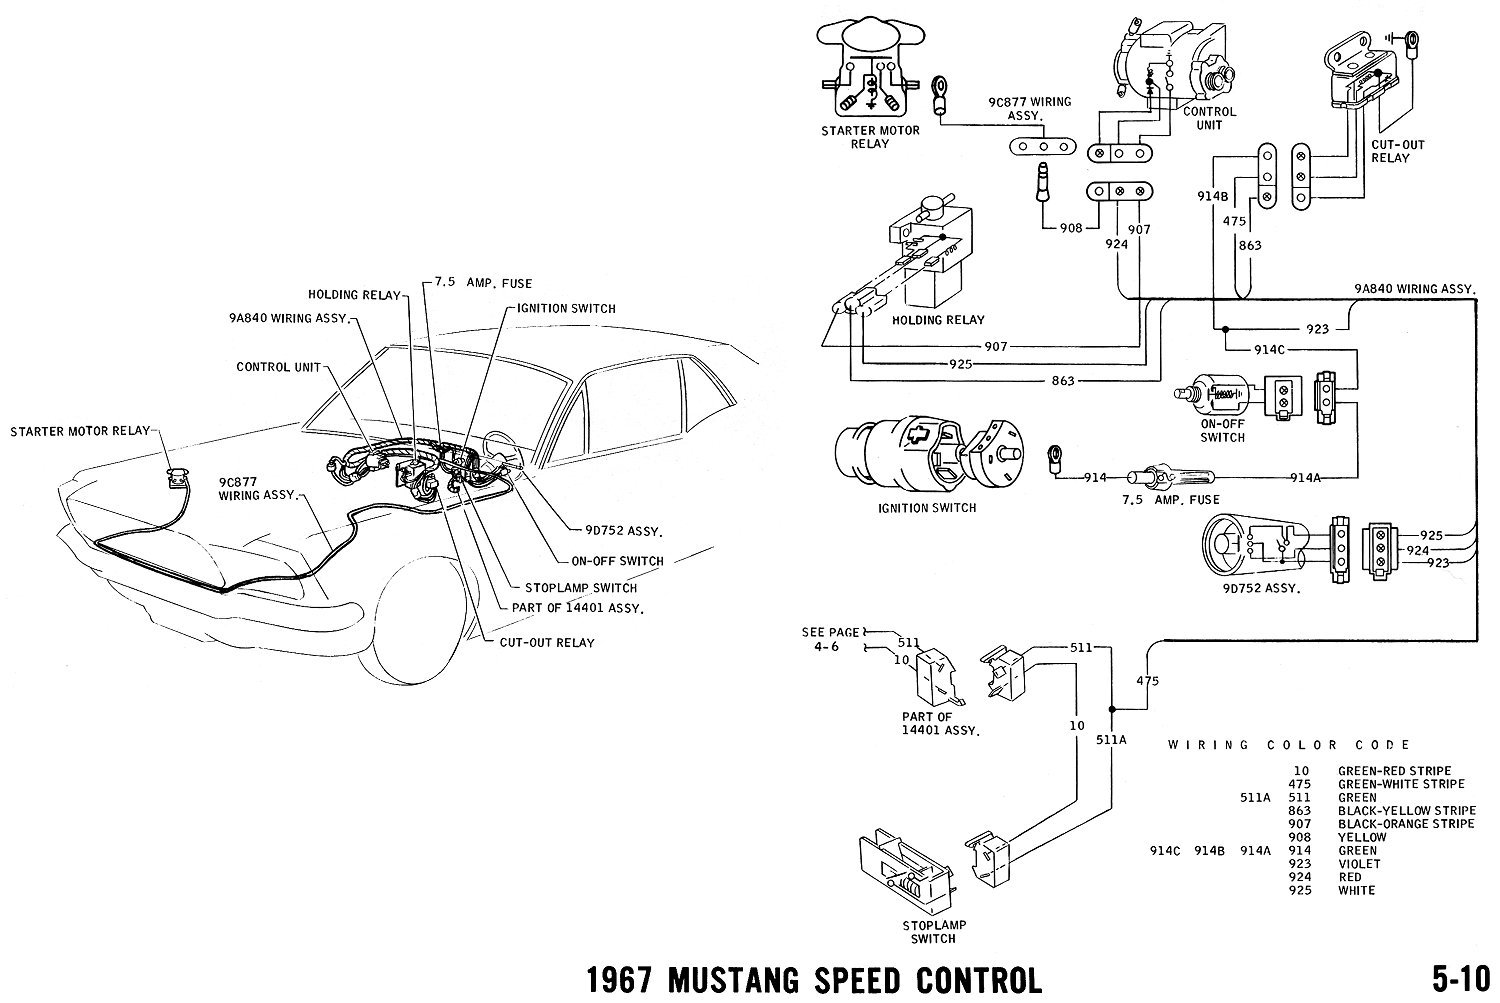 67speed 1967 mustang wiring and vacuum diagrams average joe restoration 1967 mustang ignition wiring diagram at bayanpartner.co